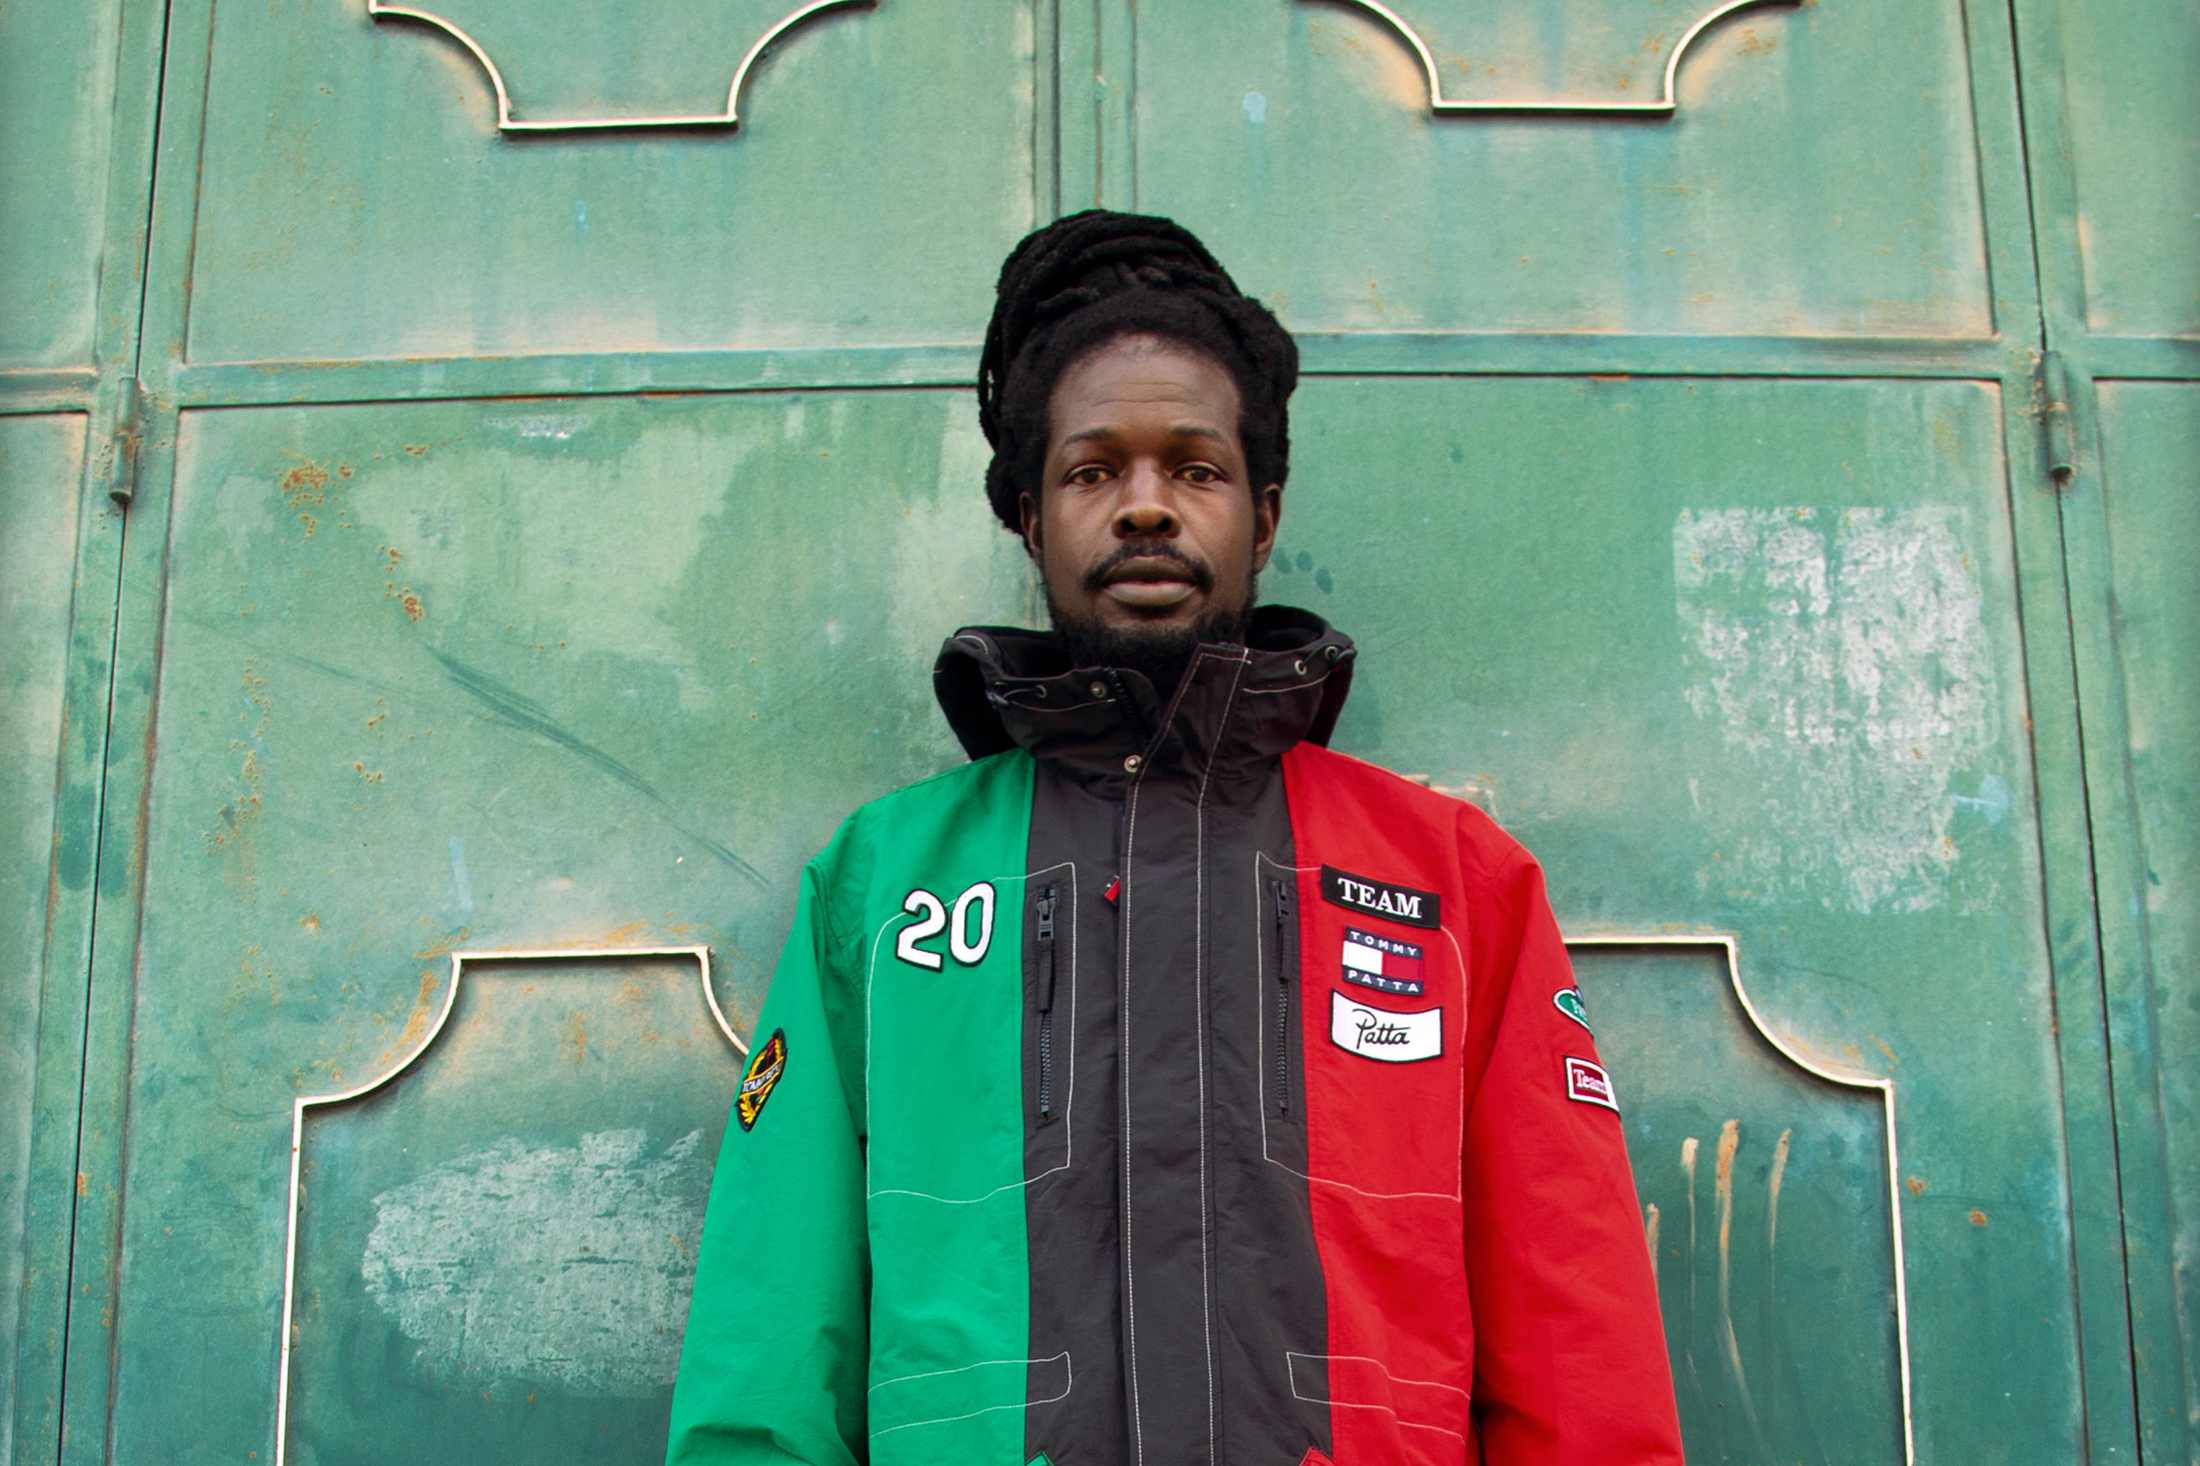 Tommy Hilfiger And Patta Collaborate on Capsule The Diaspora Movement